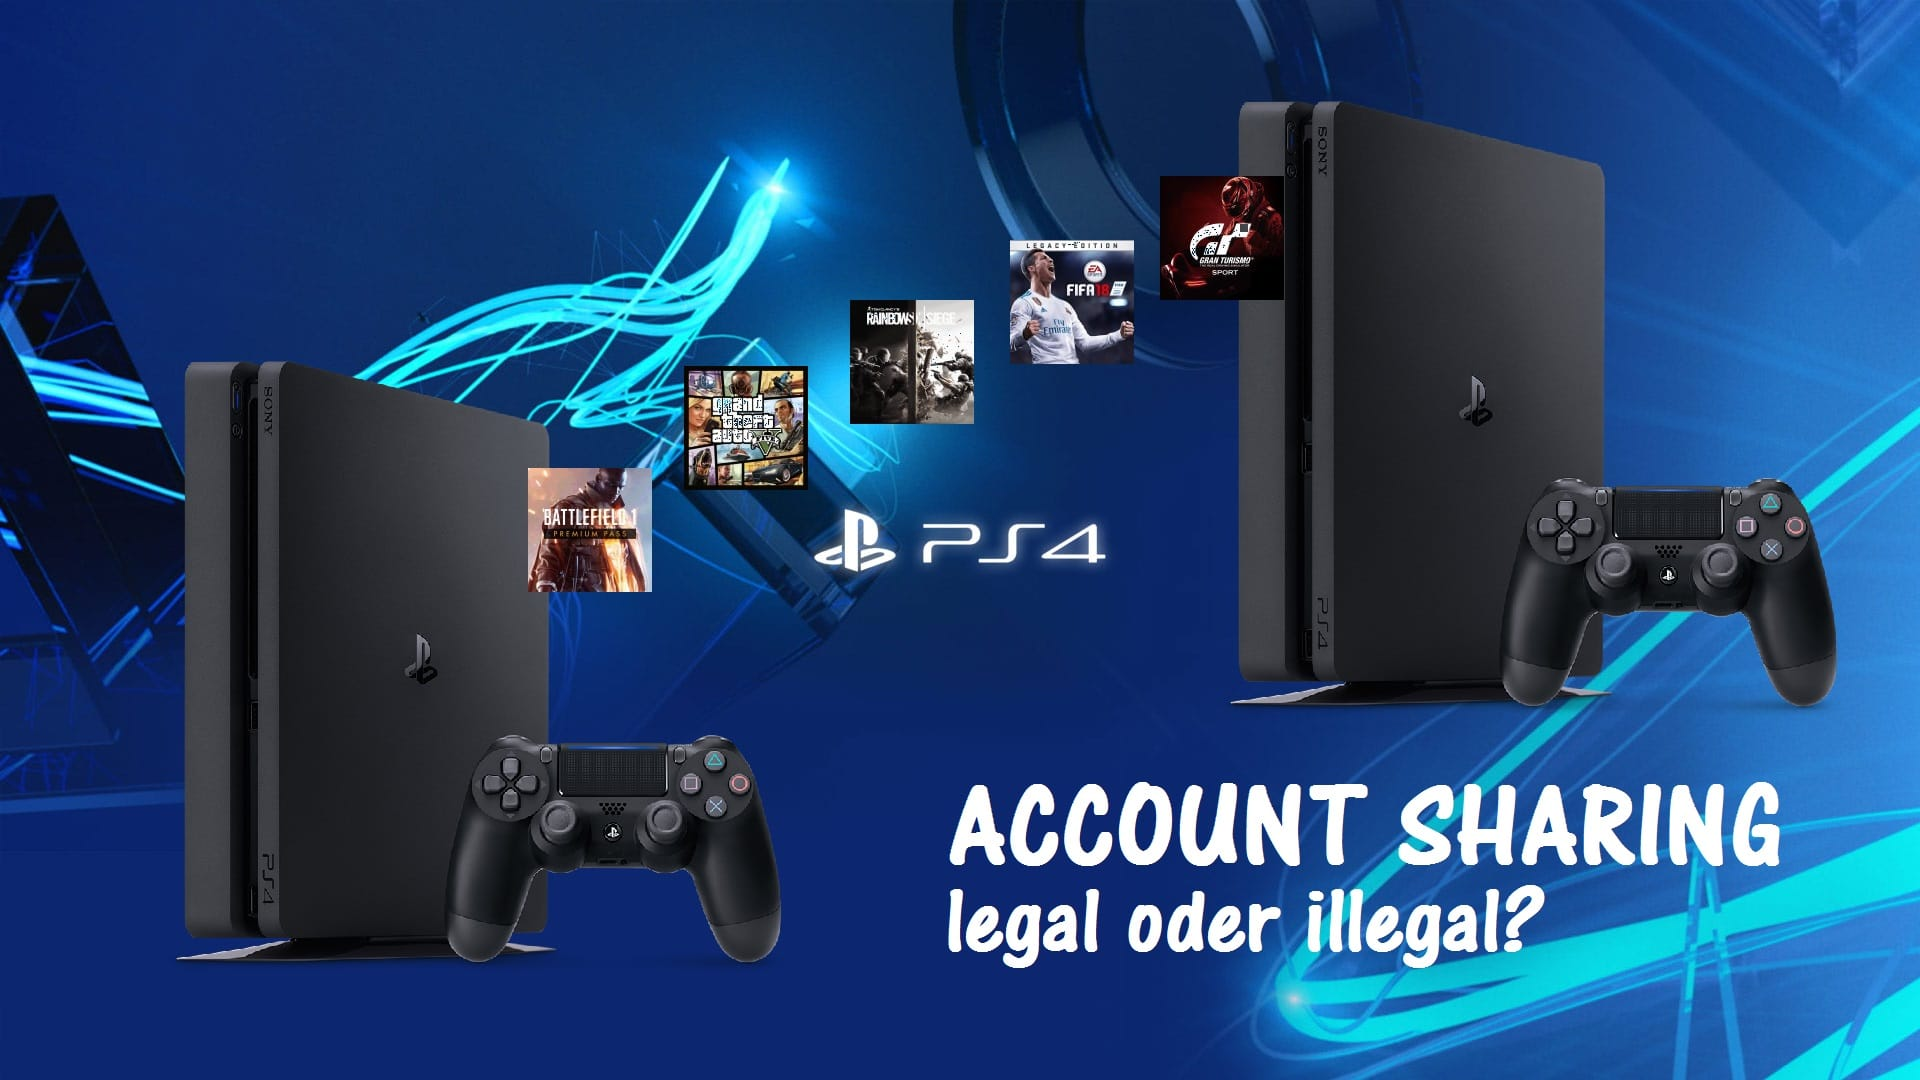 ps4 spiele illegal